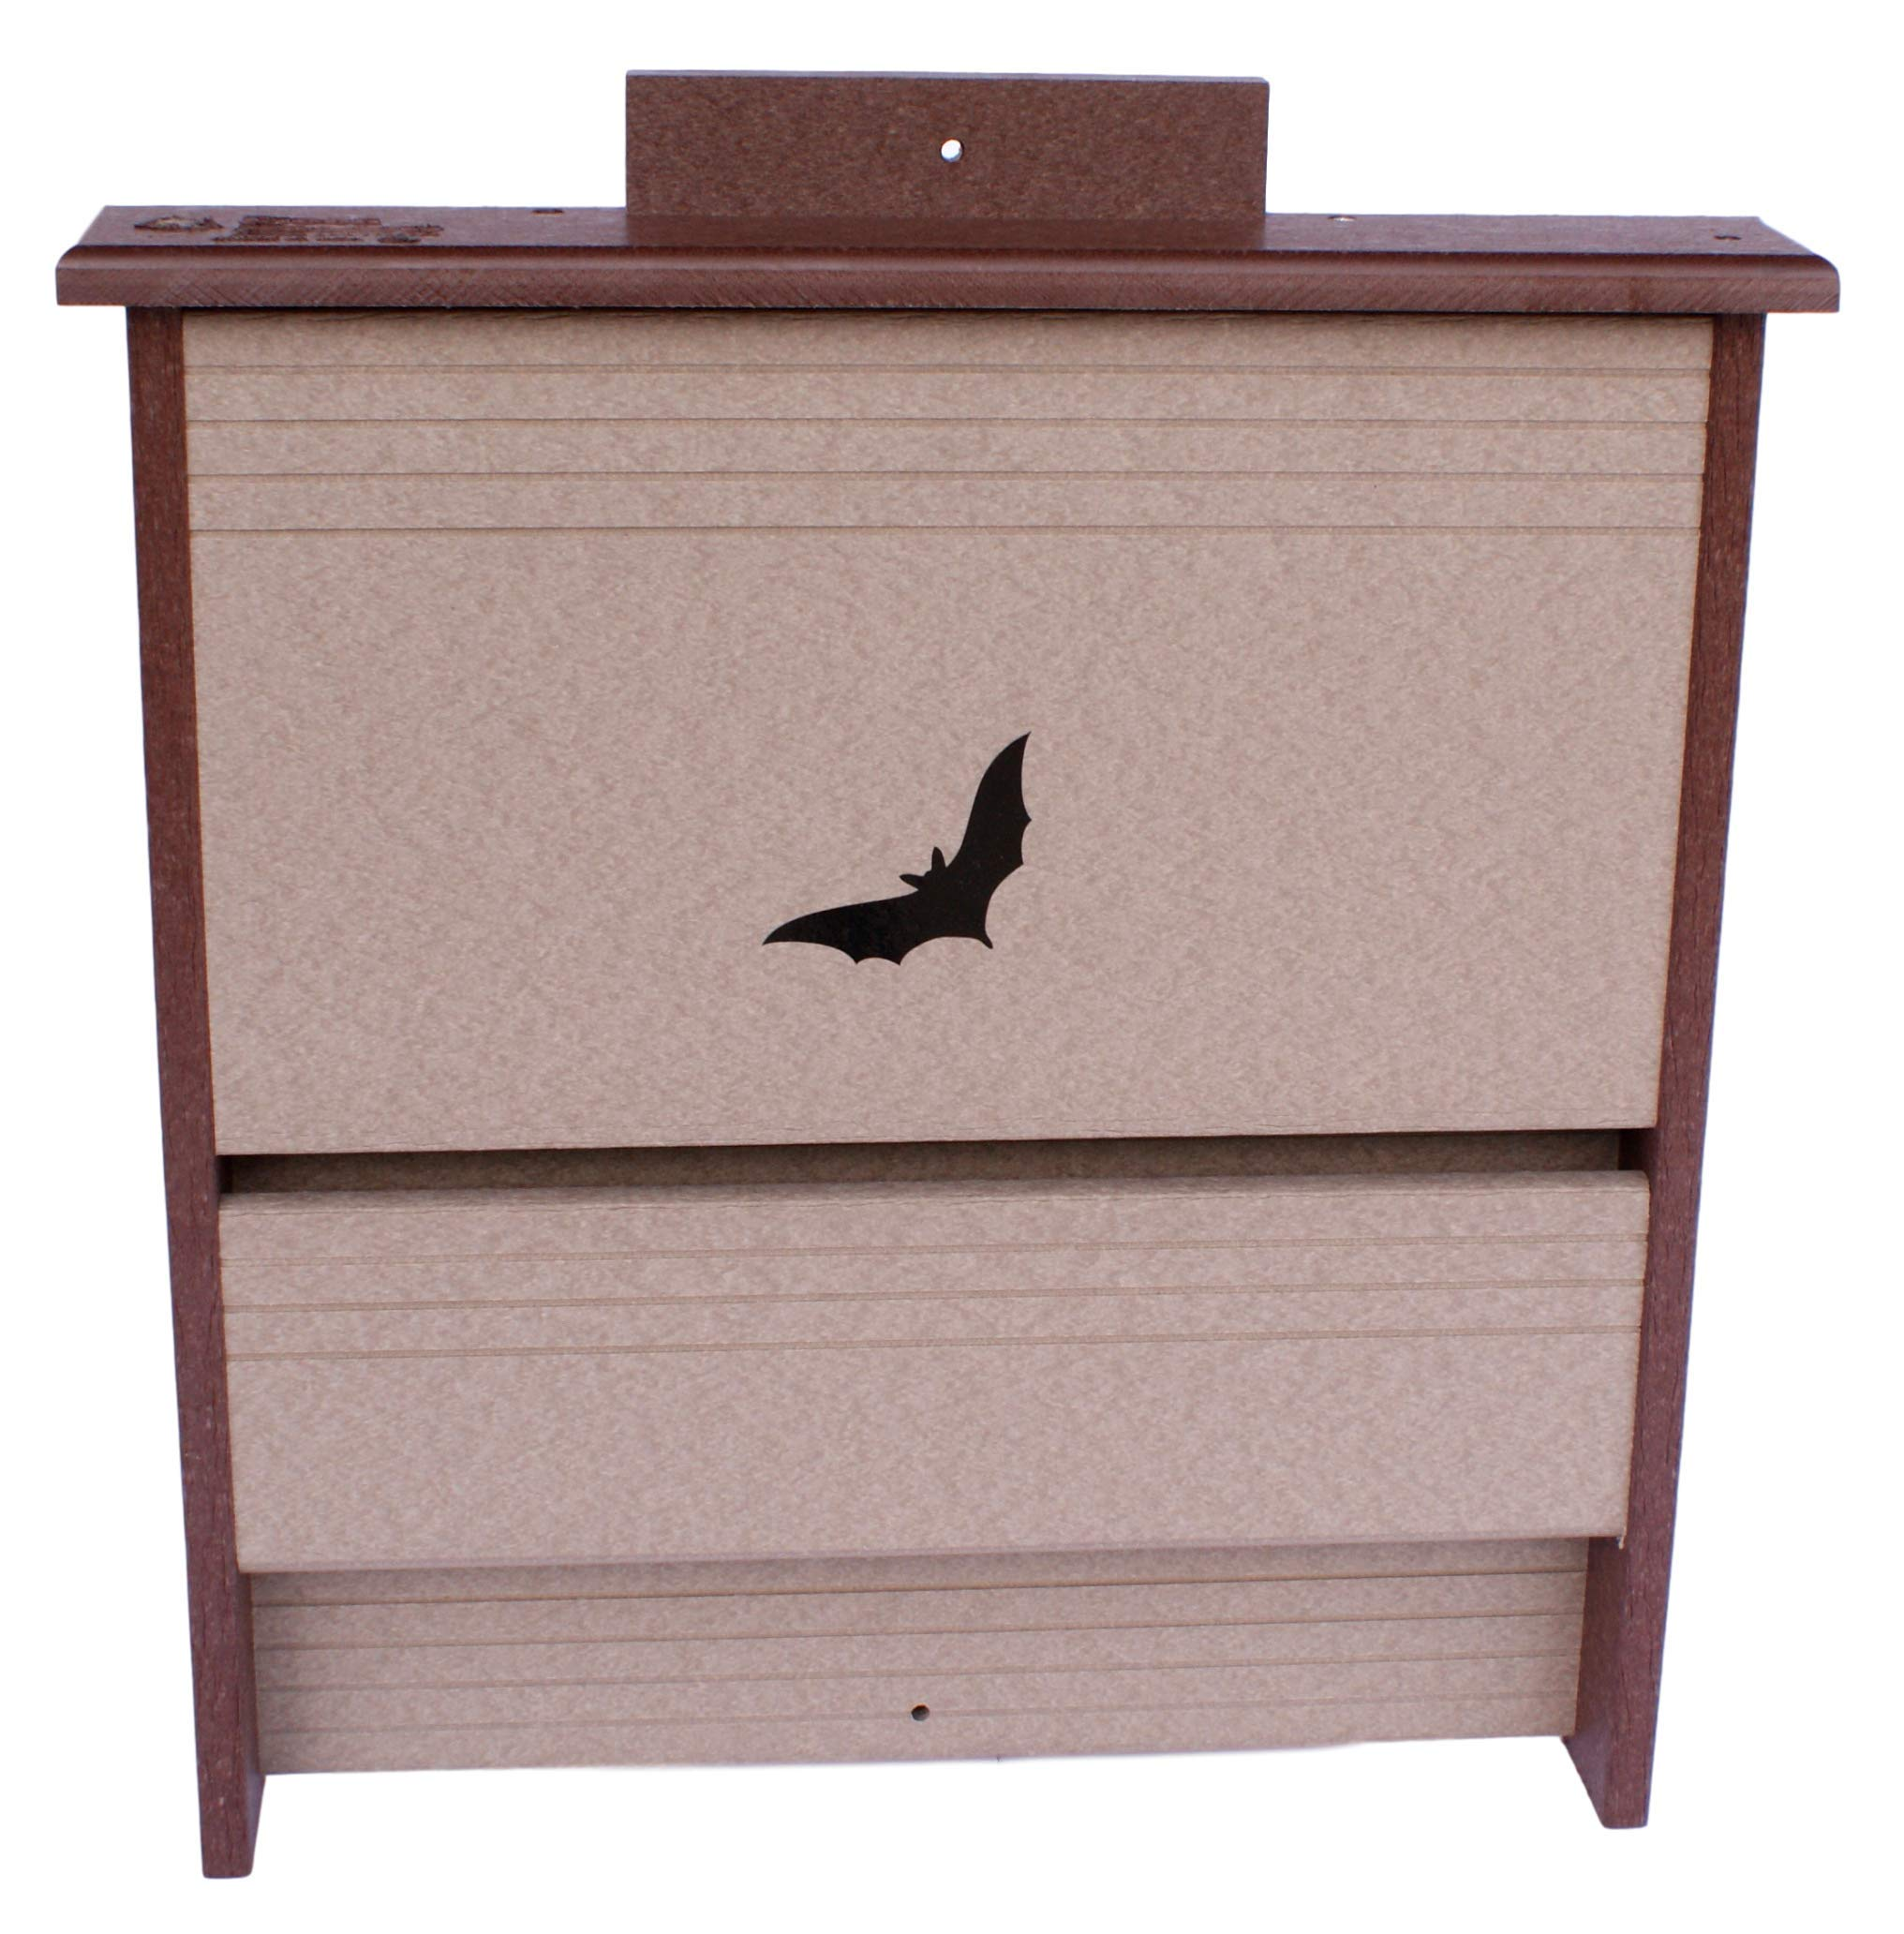 Amish-Made 20 Colony Bat House, Eco-Friendly Poly-Wood (Milwaukee Brown/Weathered Wood)